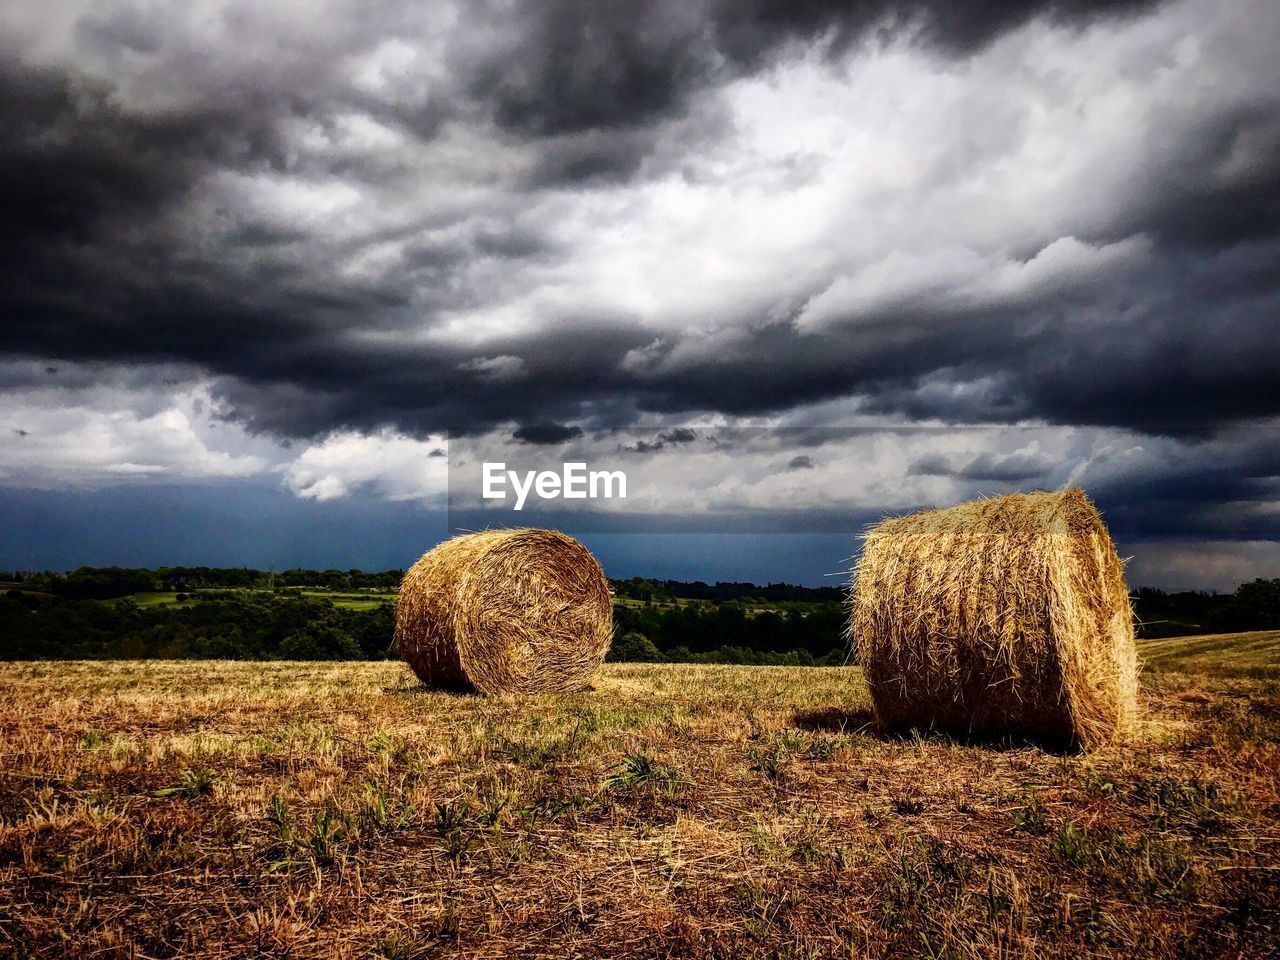 bale, hay, field, agriculture, hay bale, sky, cloud - sky, tranquility, rural scene, harvesting, landscape, tranquil scene, outdoors, no people, day, haystack, nature, beauty in nature, scenics, storm cloud, grass